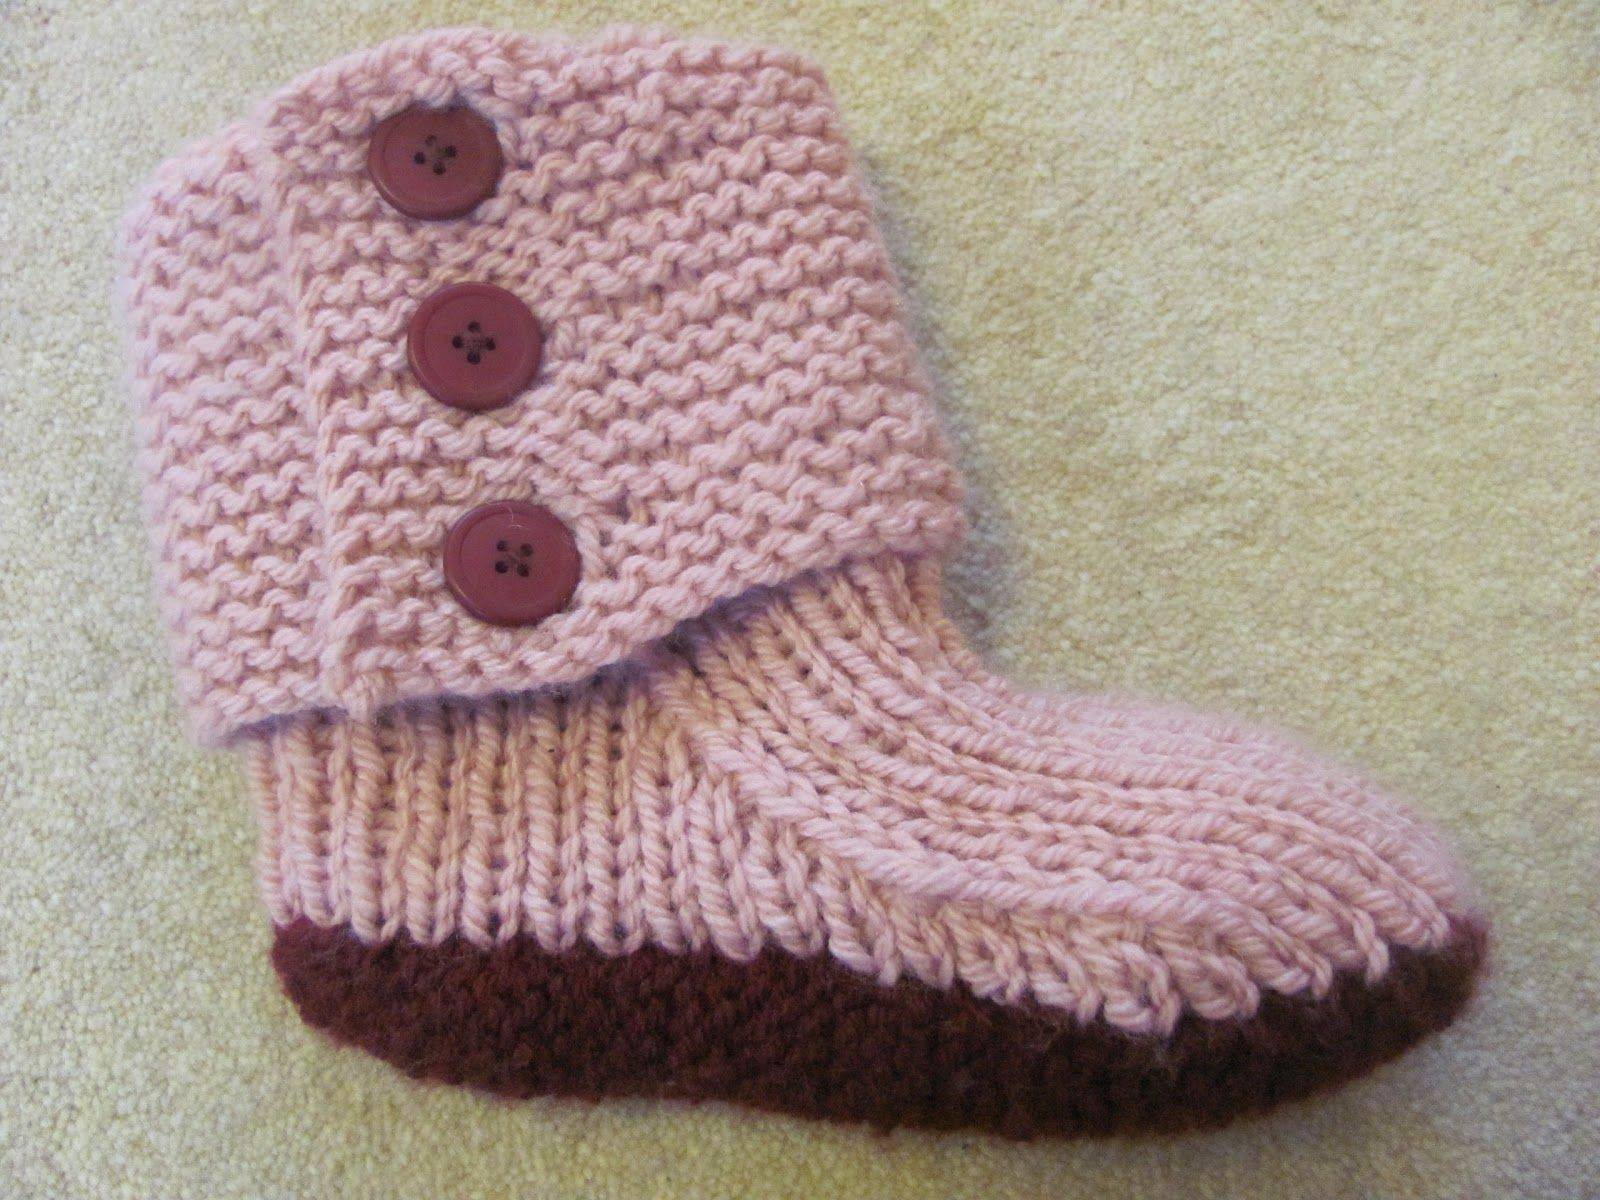 Actual knitted slipper boots by the length you knit creates actual knitted slipper boots by the length you knit creates pattern to hand knit bankloansurffo Choice Image